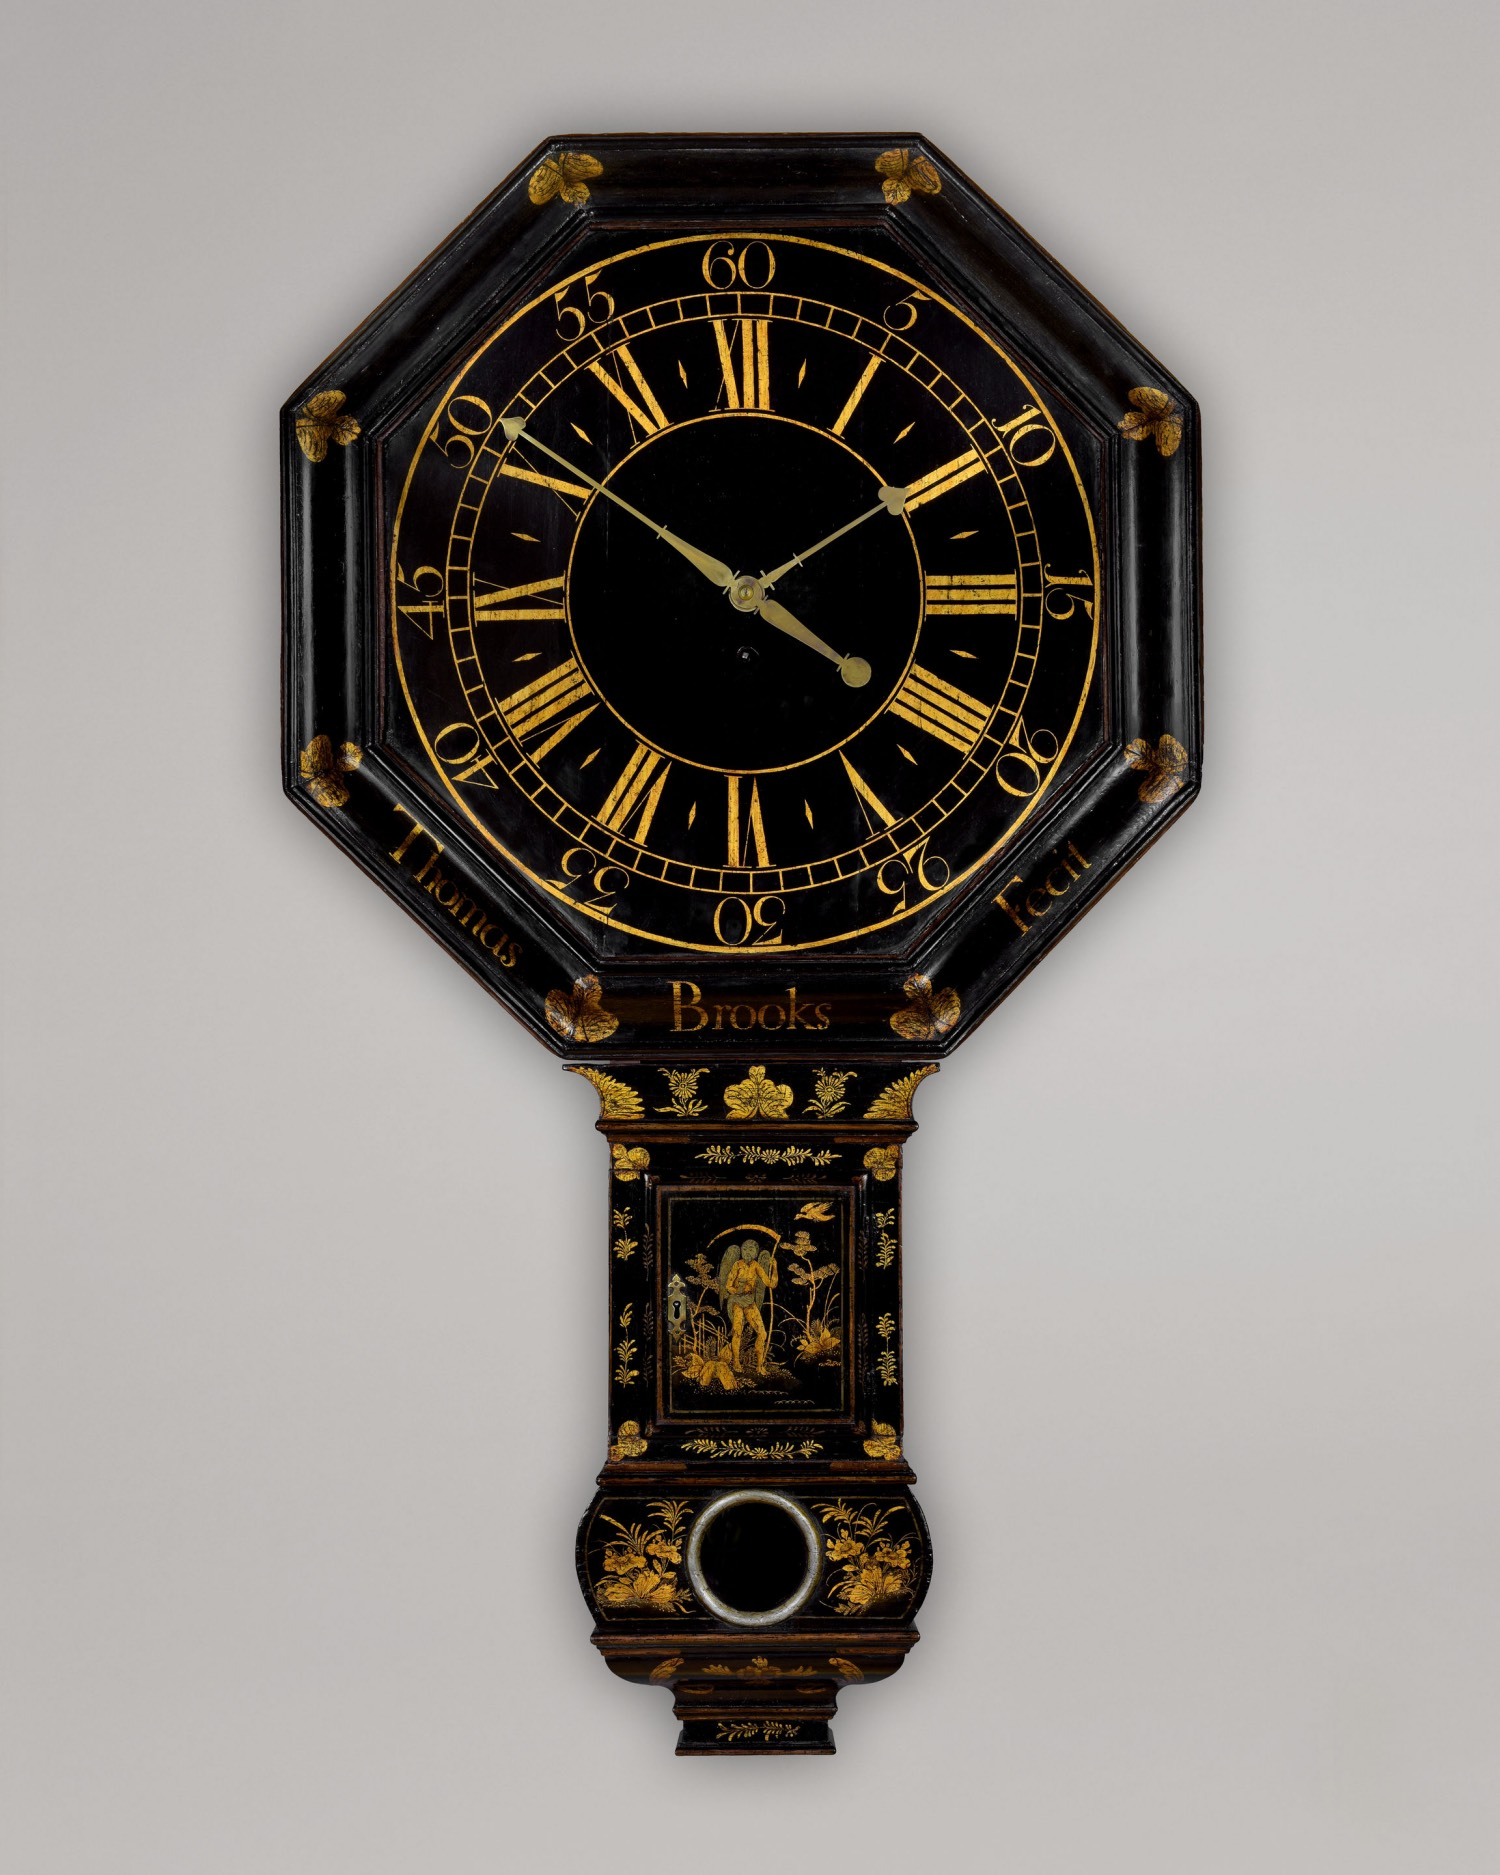 THOMAS BROOKS FECIT. A RARE, EARLY SHIELD DIAL TAVERN CLOCK BY THIS UNUSUAL EARLY MAKER.